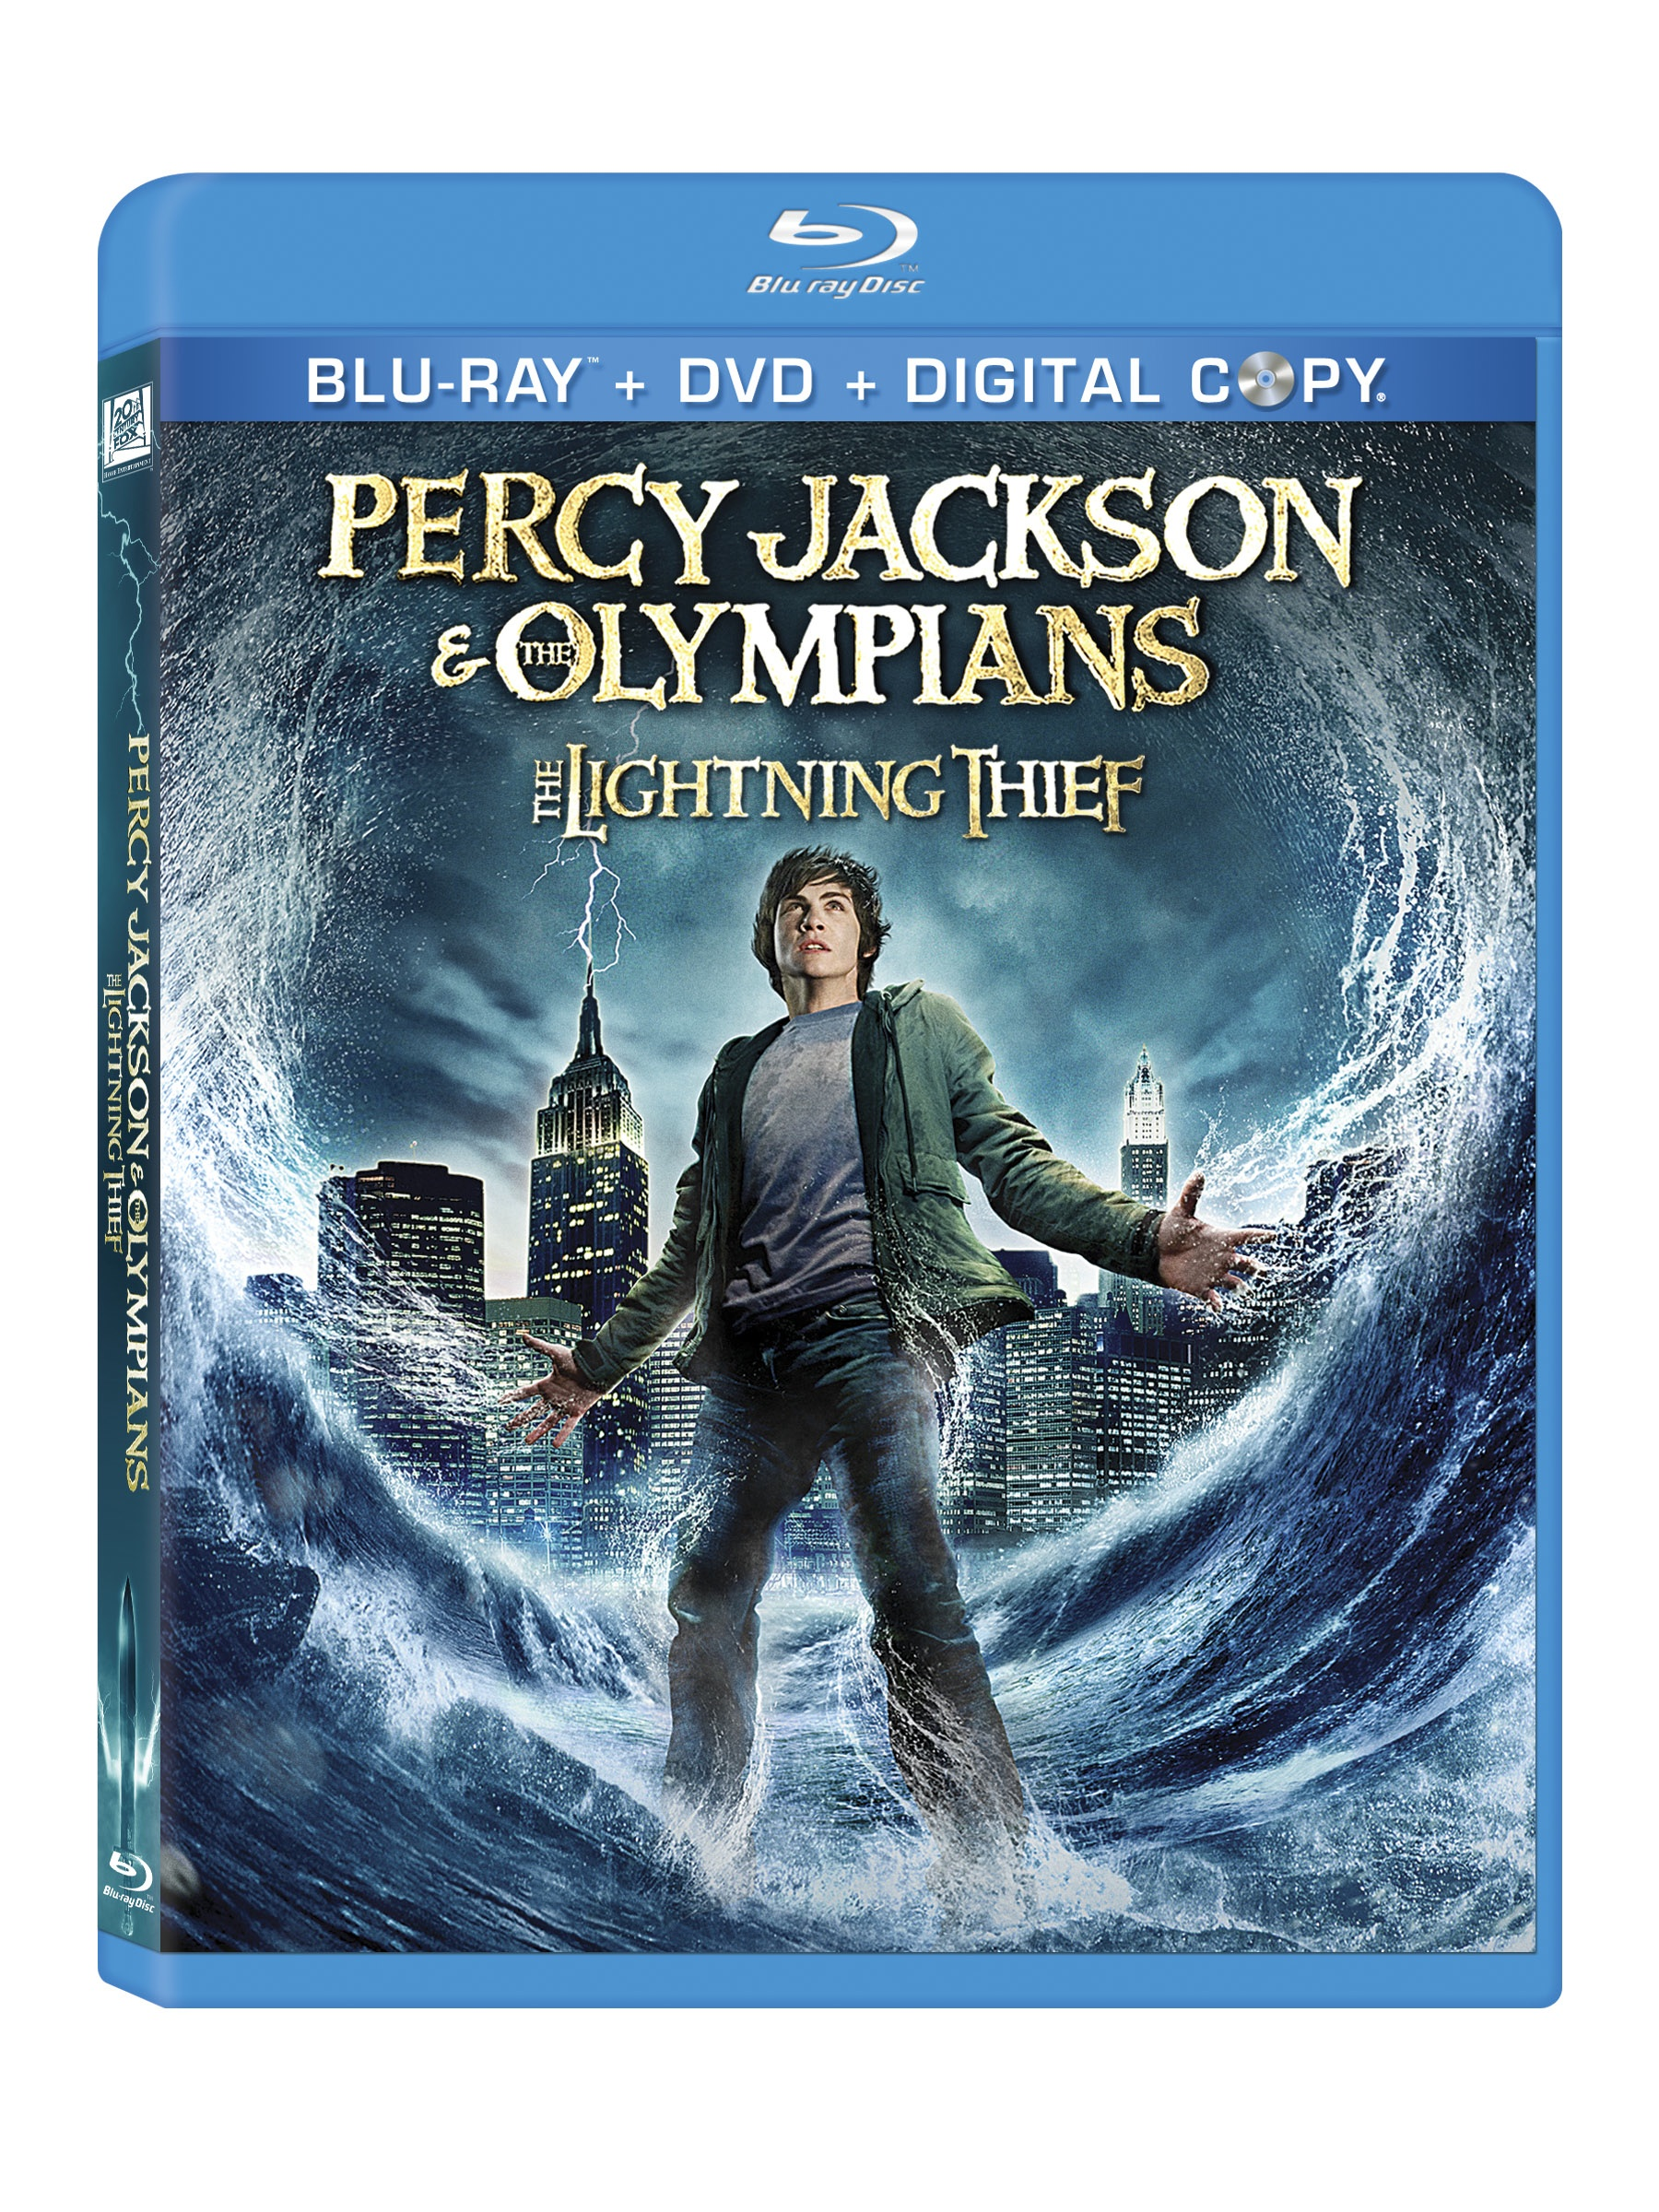 Percy Jackson And The Olympians: The Lightning Thief – DVD Review